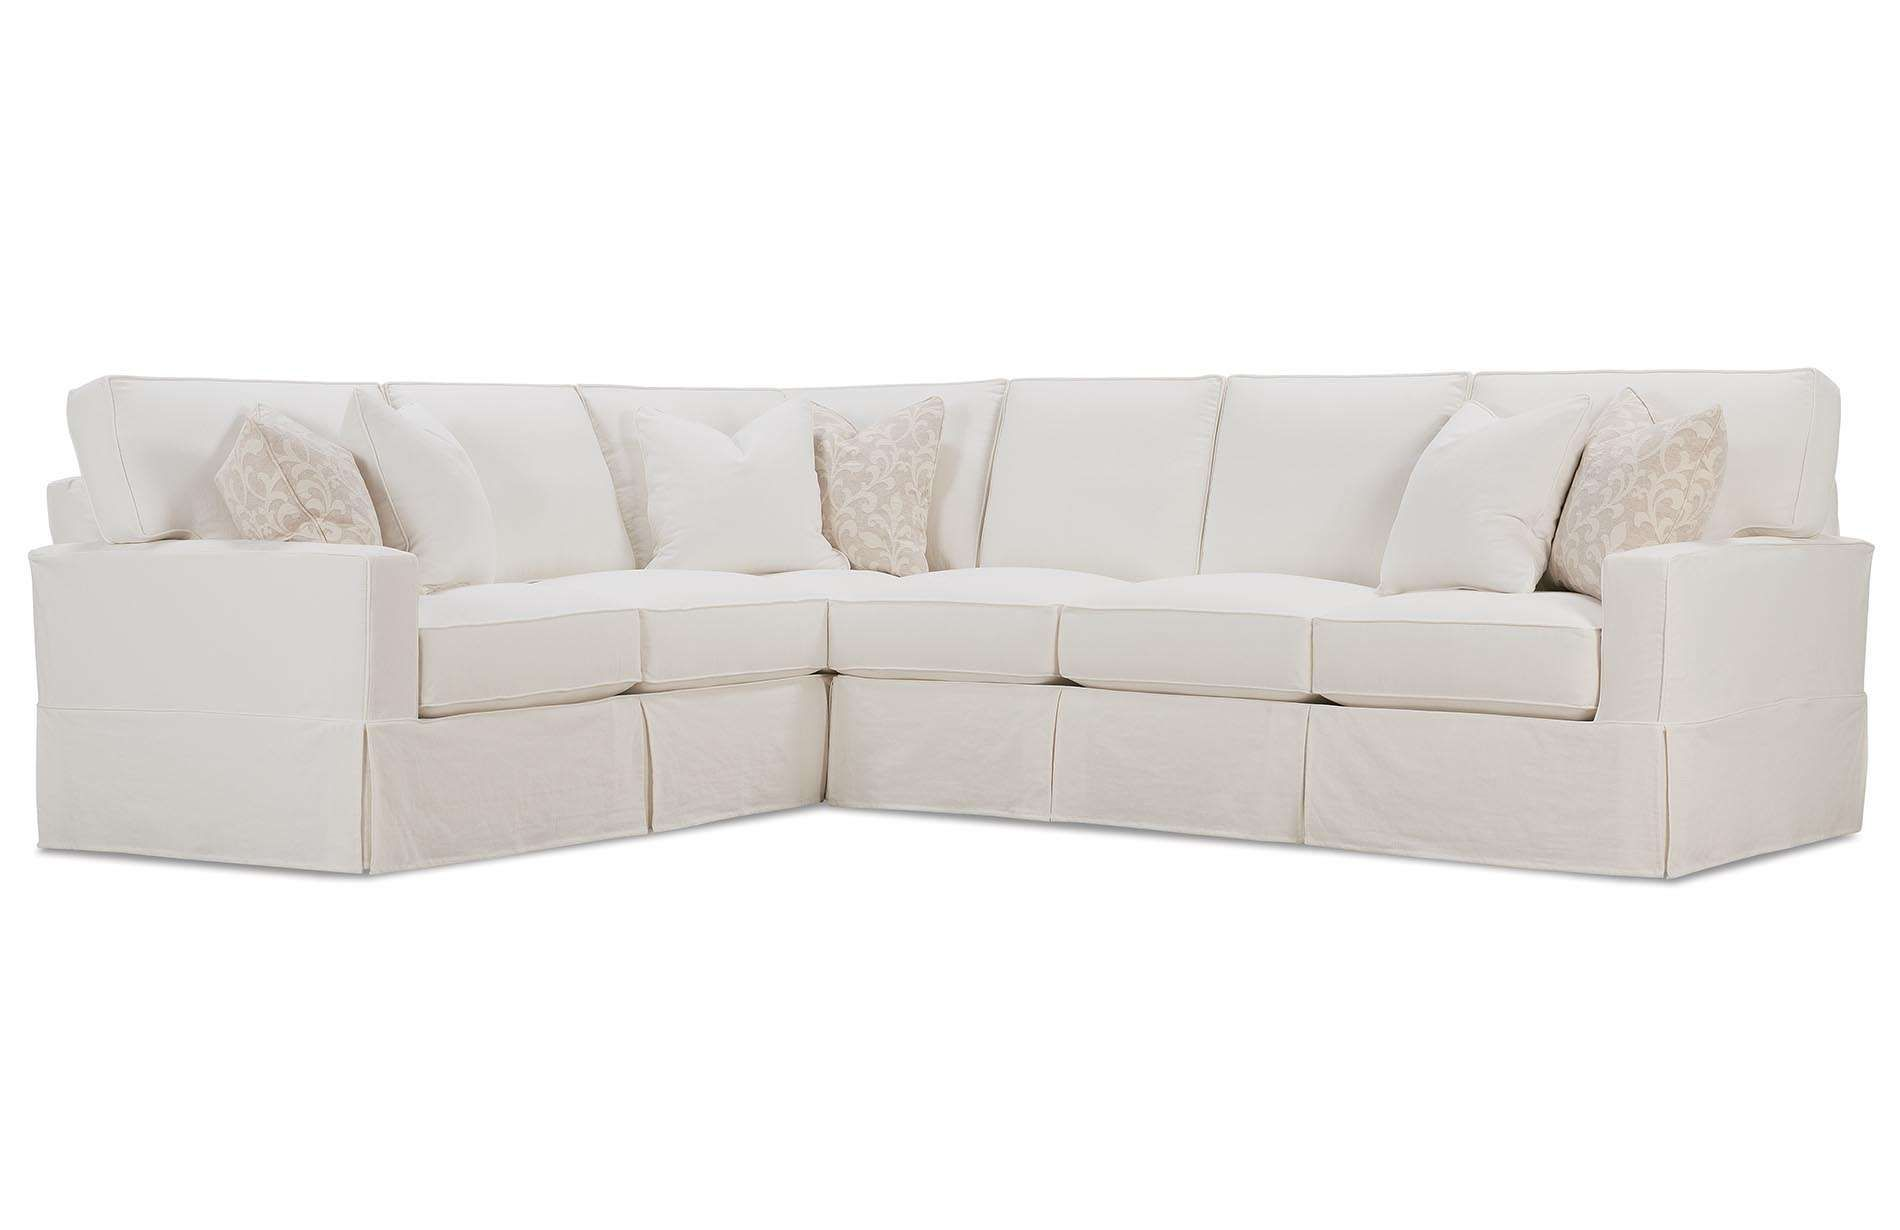 Easton Track Arm Sectional Rowe Furniture Sectional Sectional Sofa Slipcovers Custom Sectional Sofa